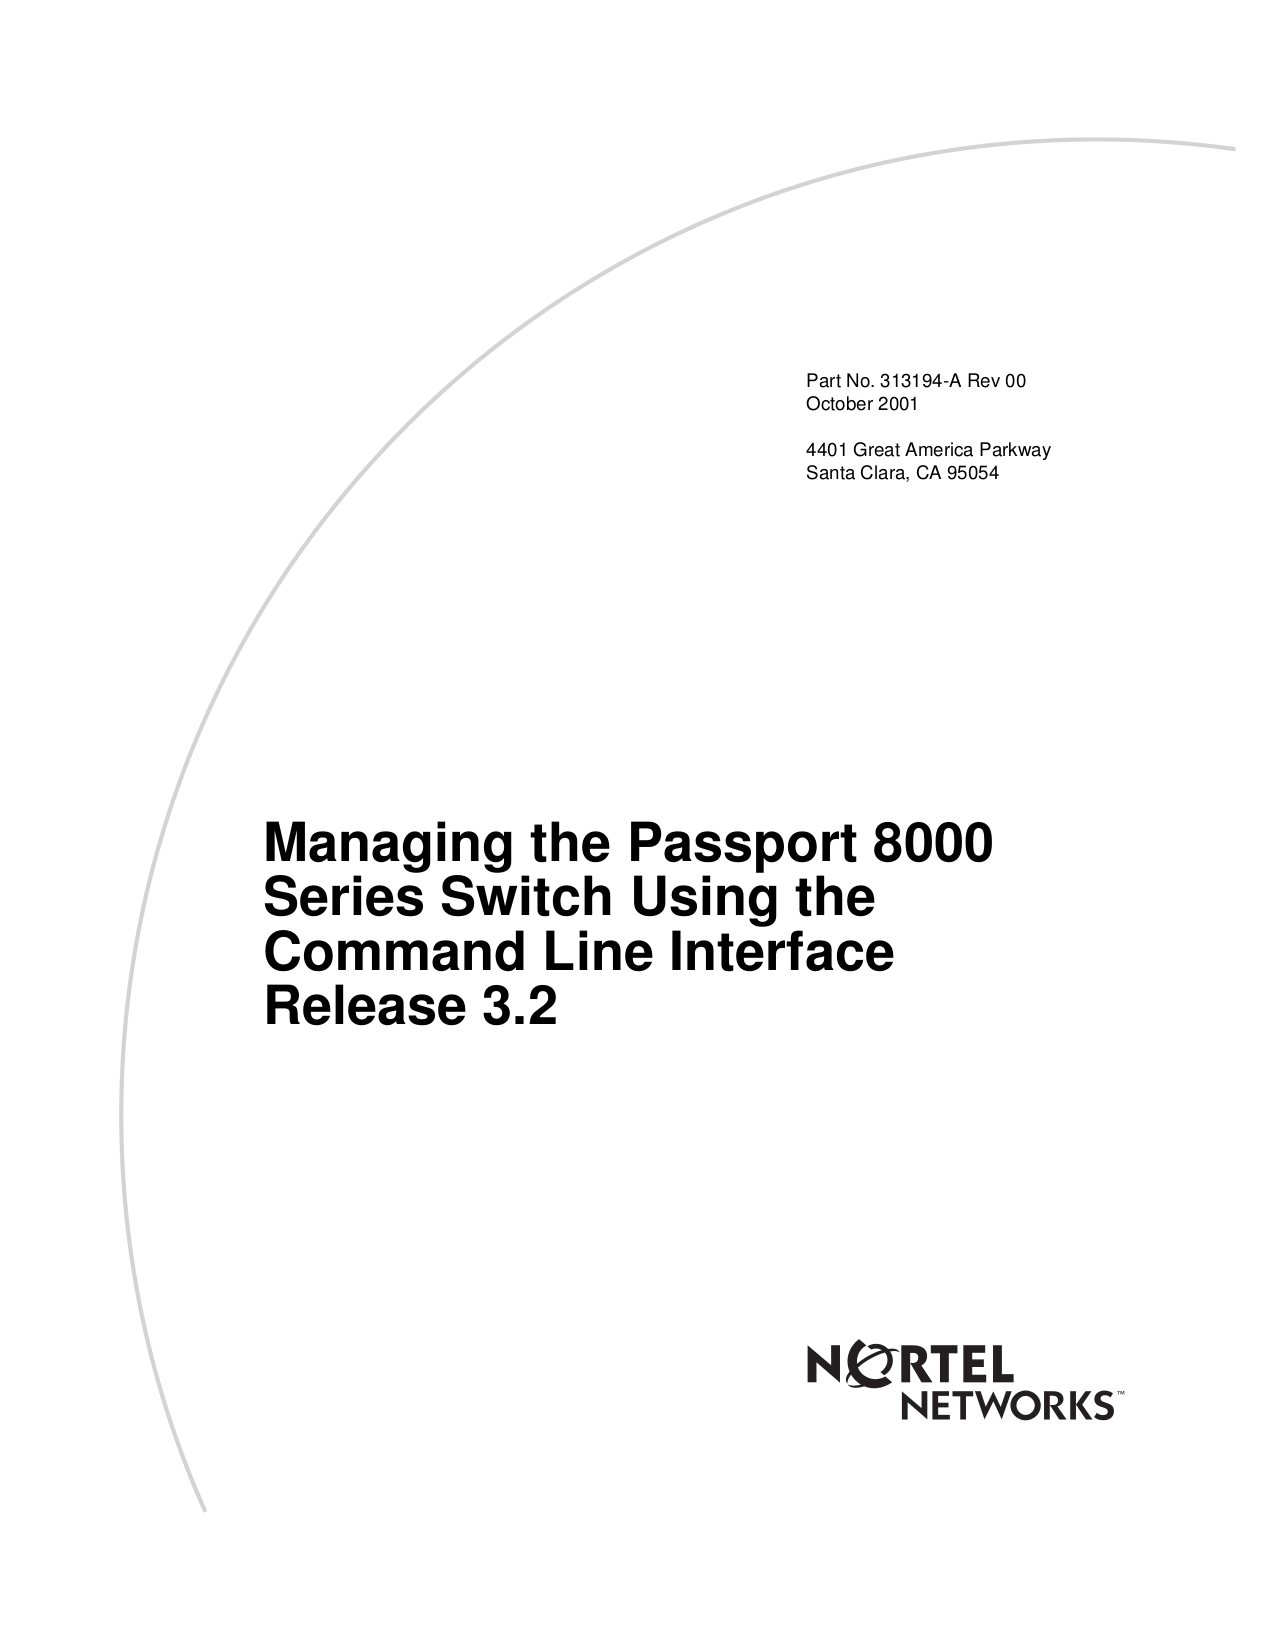 pdf for Nortel Switch Passport 8608 manual